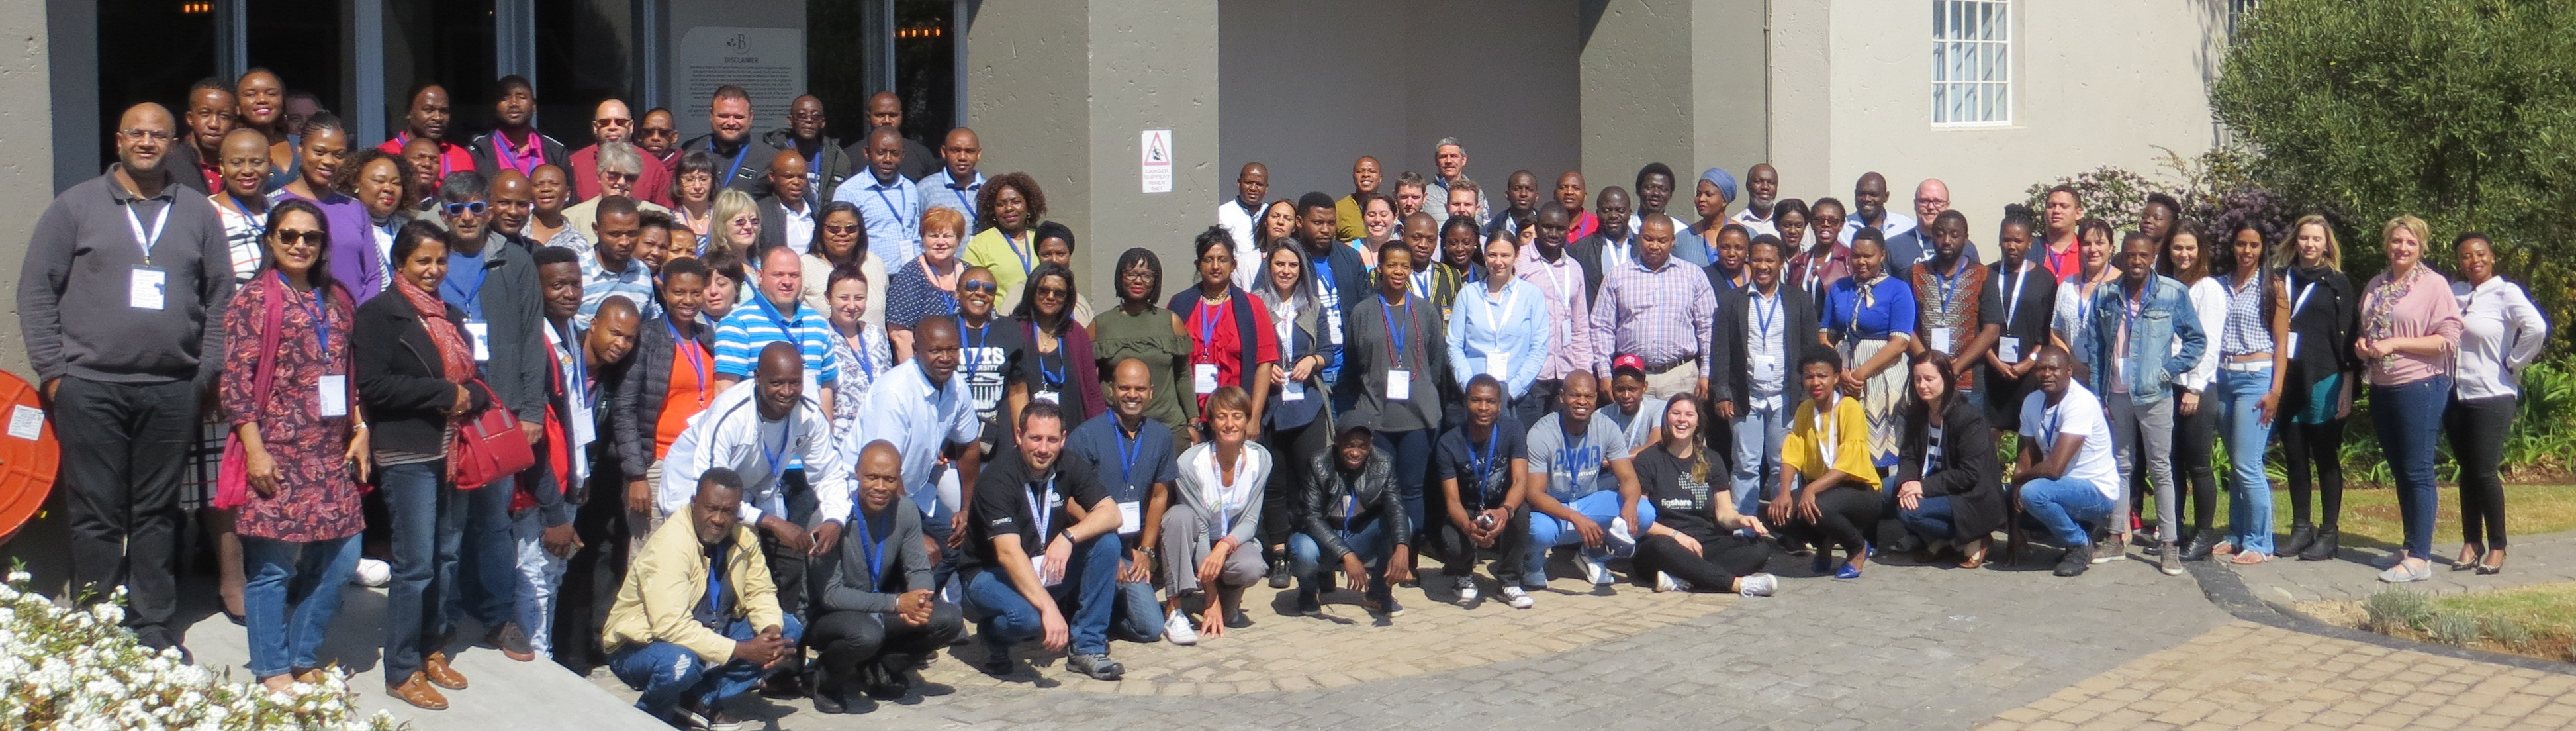 Participants and instructors of CarpentryConnect JHB 2018